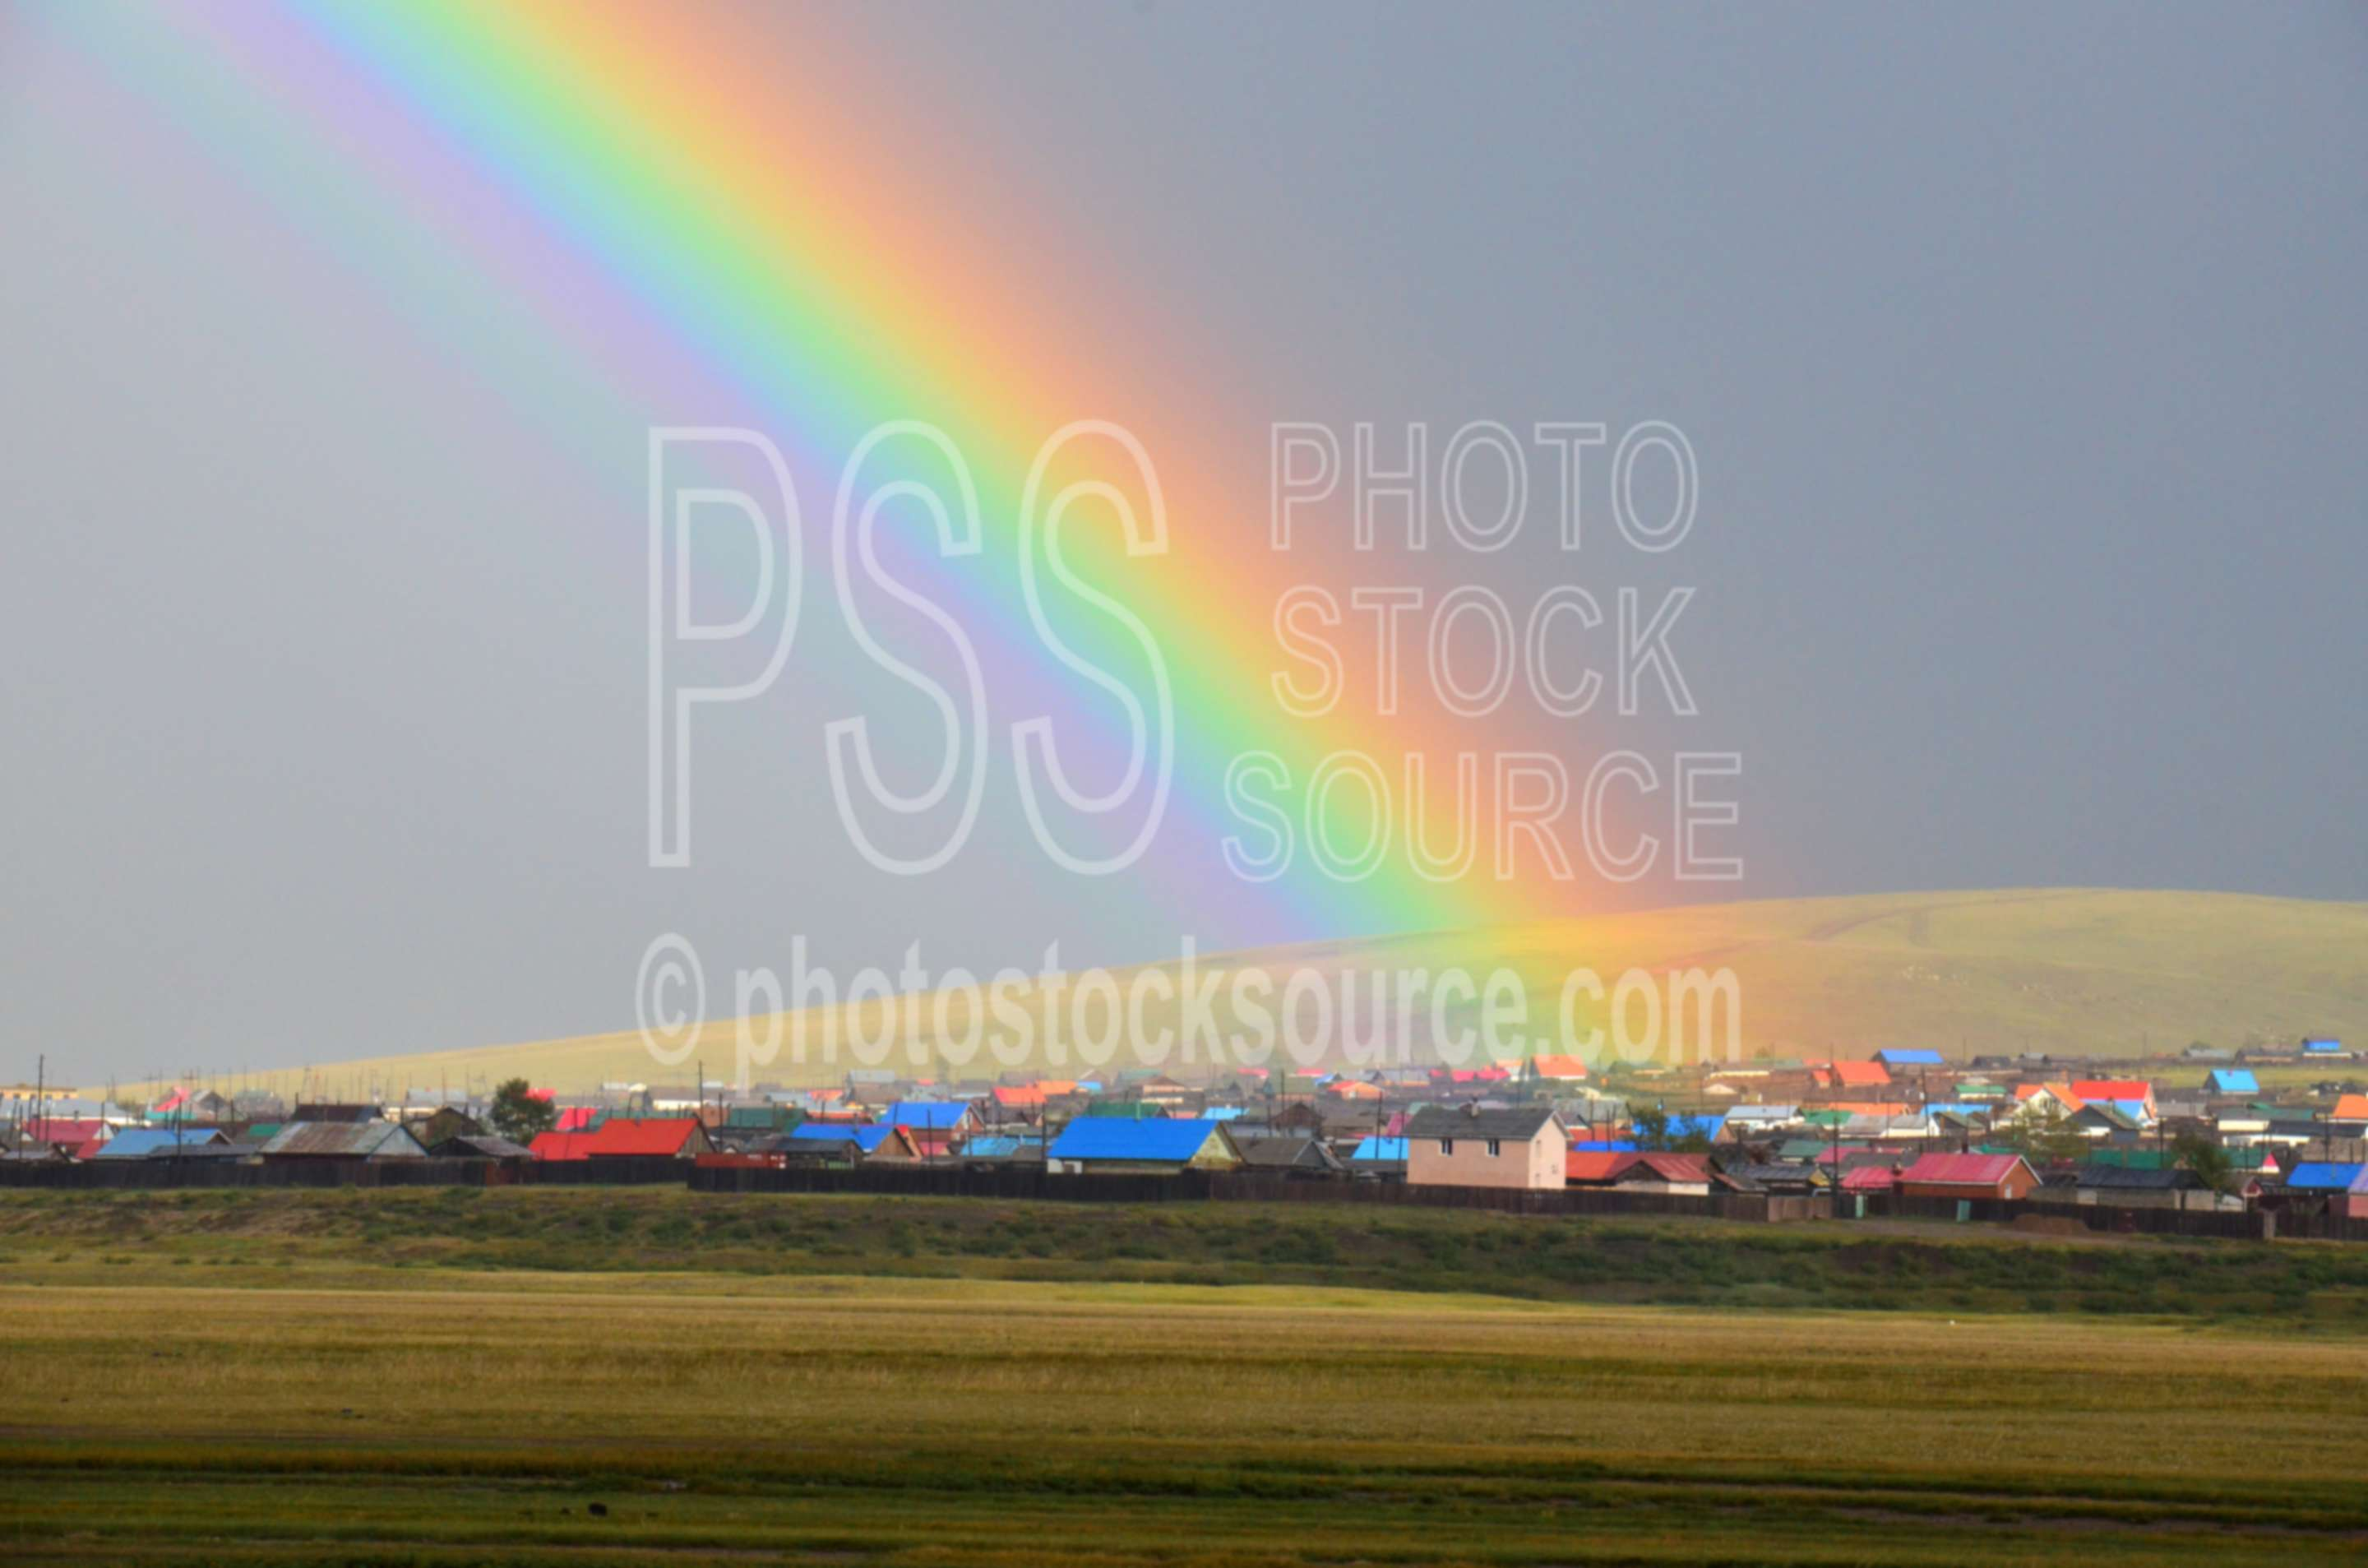 Rainbow over Kharkhorin,rainbow,town,houses,clouds,thunderstorm,weather,climate